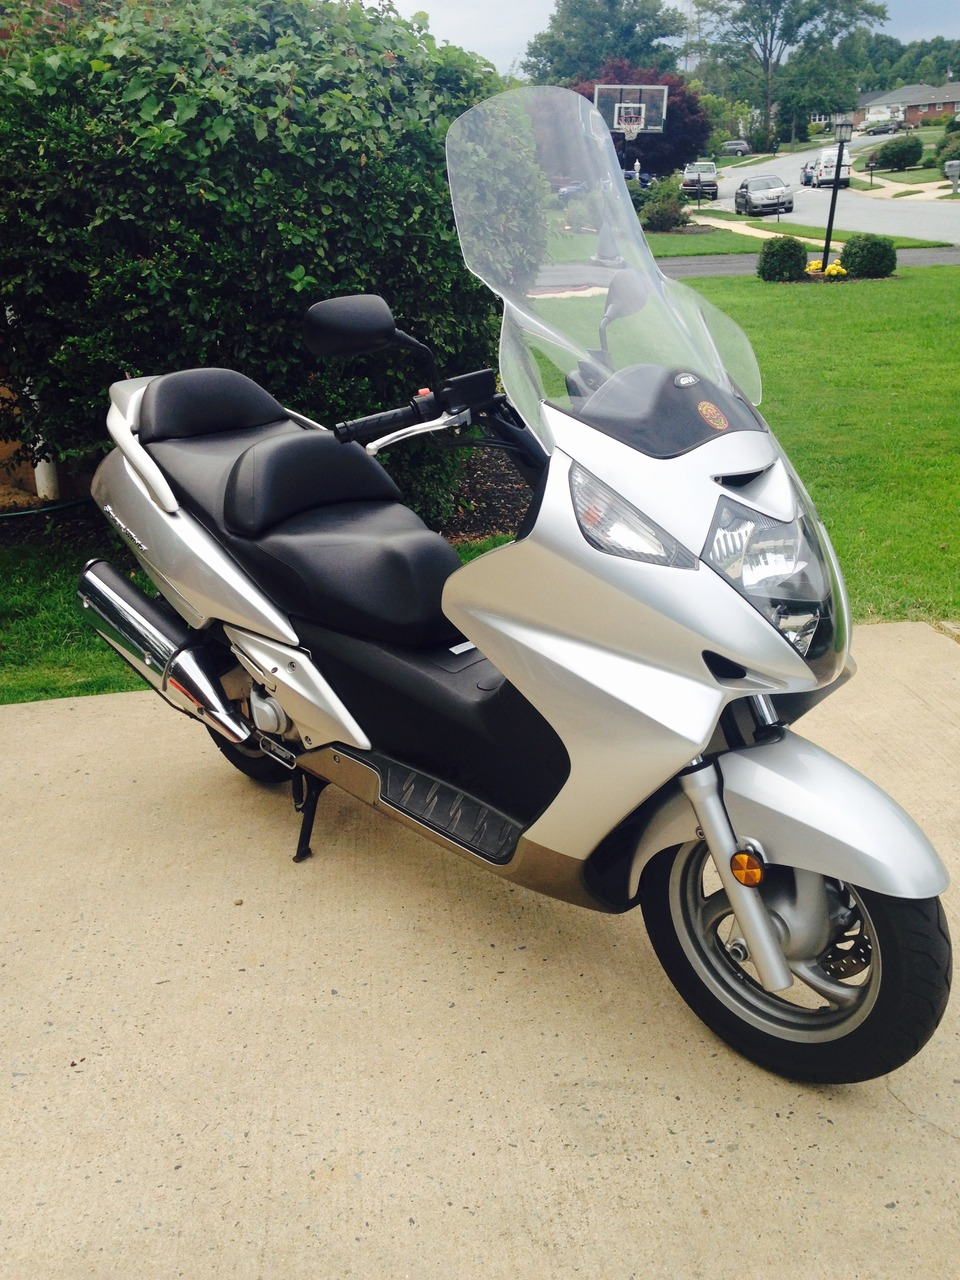 2004 Honda Silver Wing FSC600, motorcycle listing